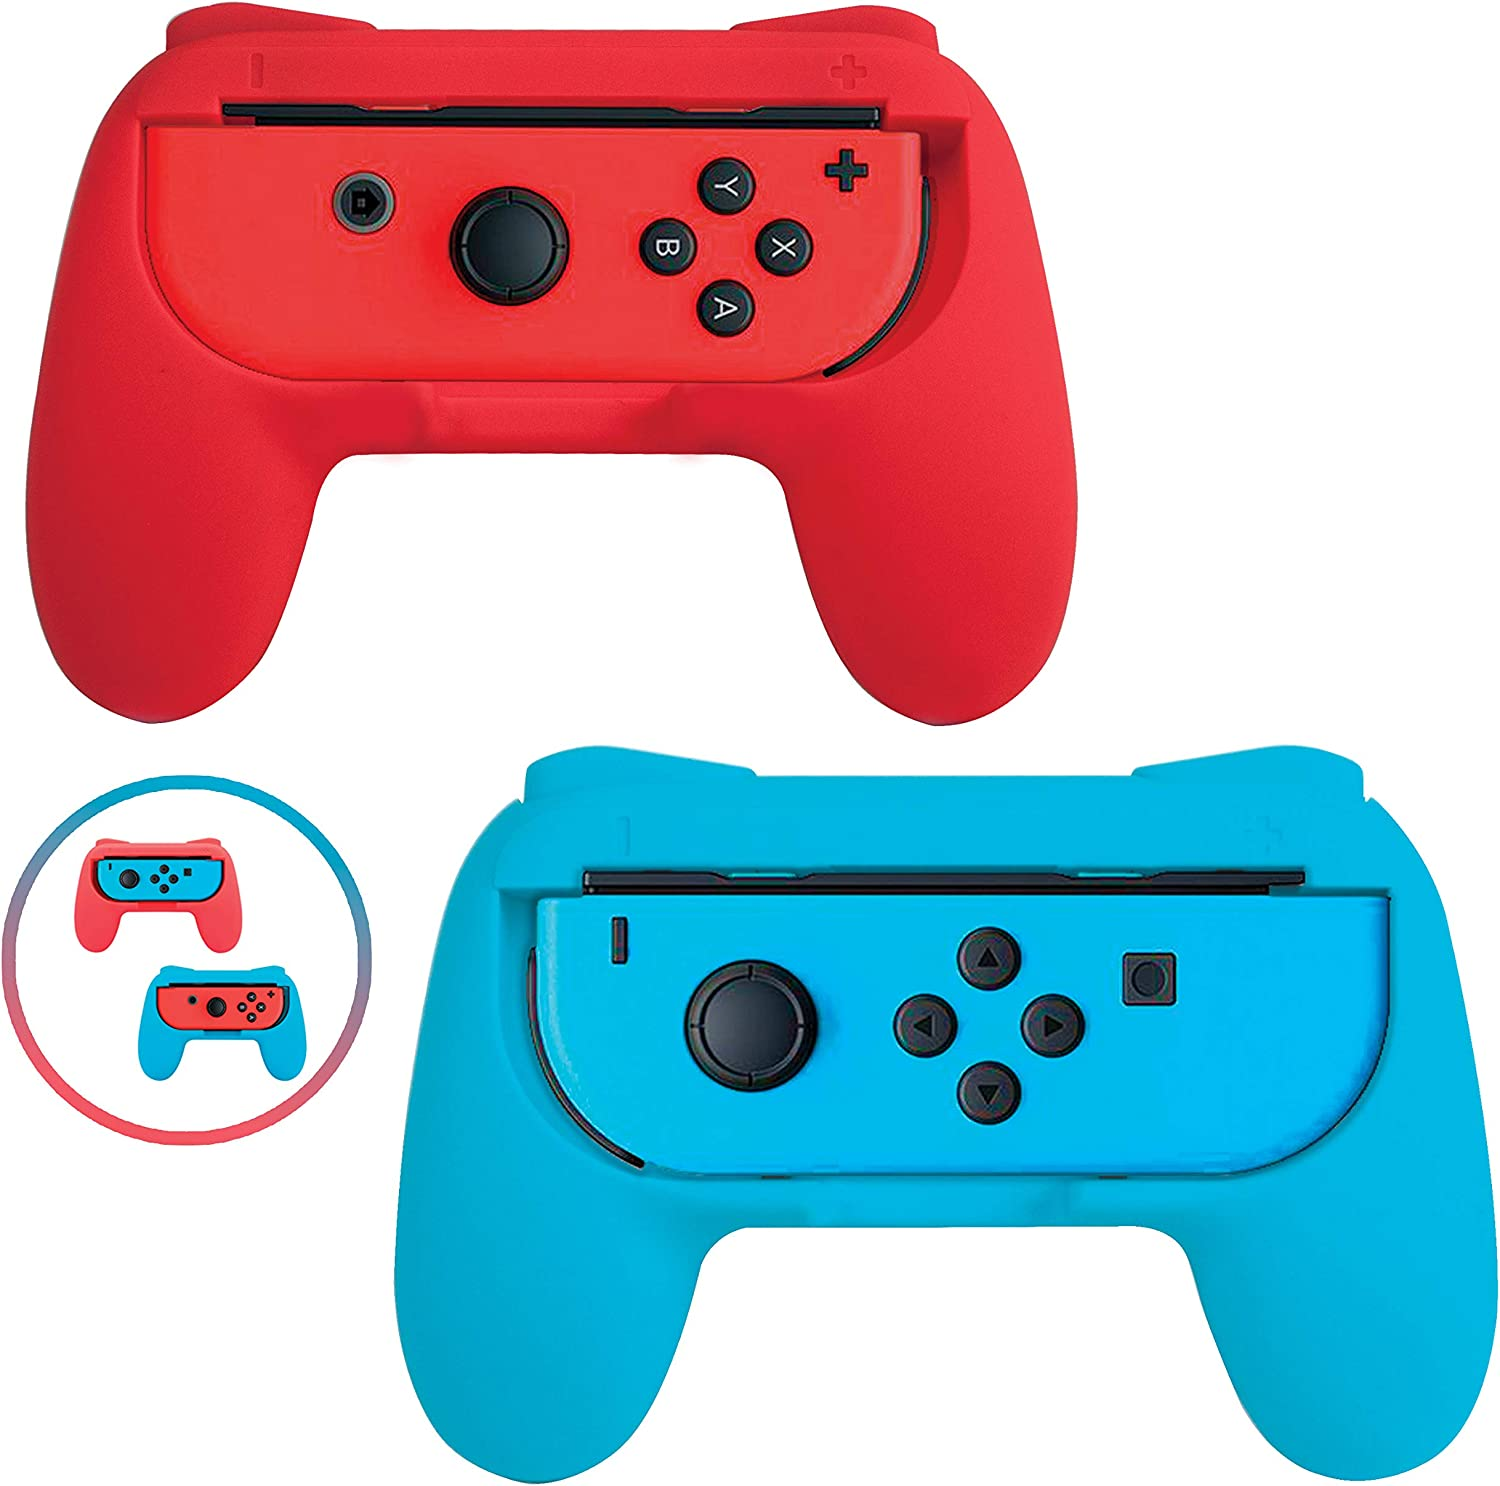 Beastron Grips Compatible with Nintendo Switch Joy Cons, Wear-Resistant Handle, 2 Pack (Red & Blue) (Matte Finish)